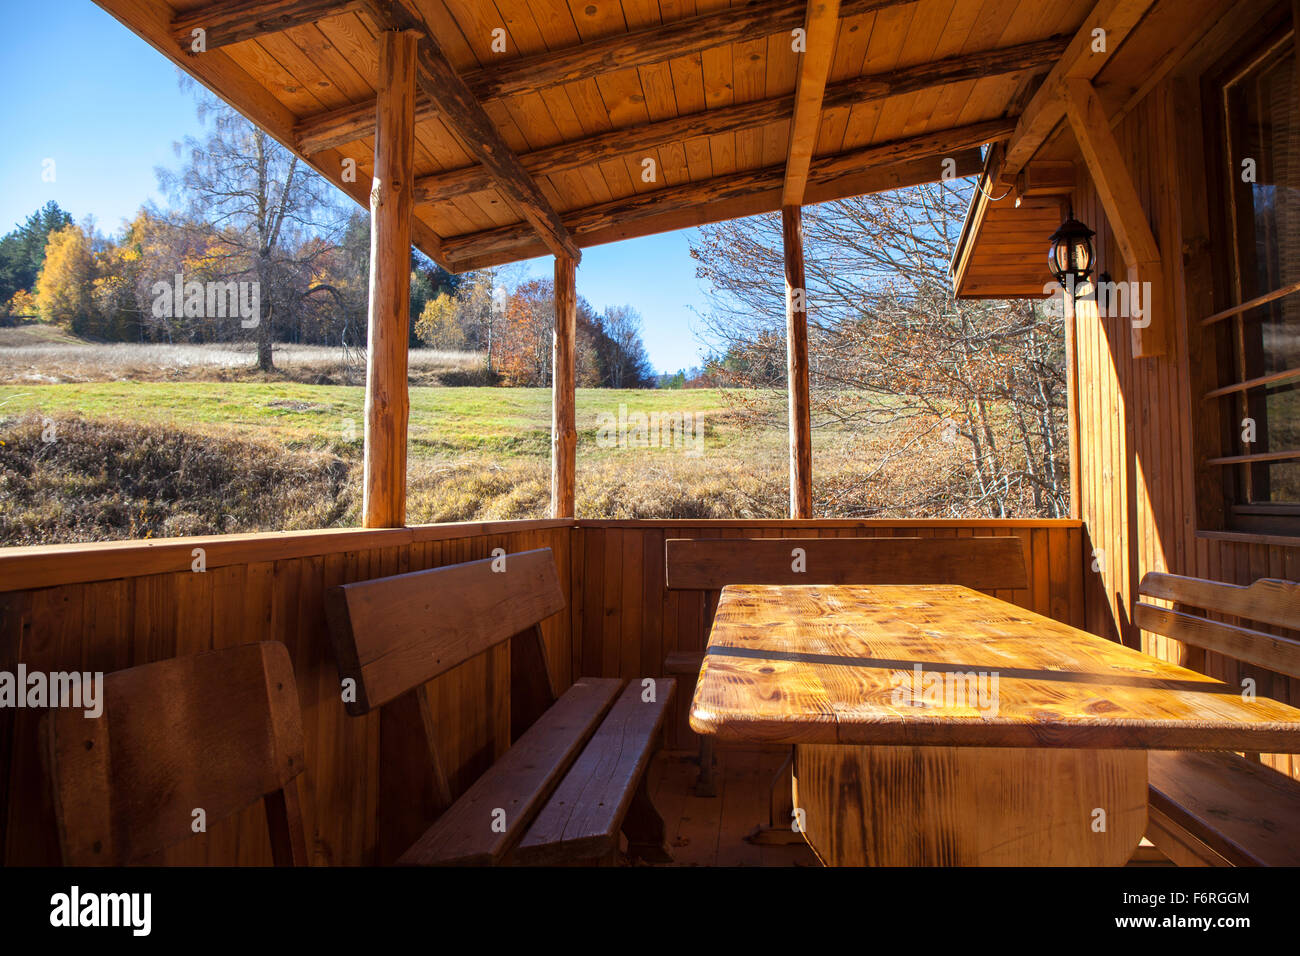 Wooden porch, veranda of a small mountain house. The sun is shining and the sky is clear blue. - Stock Image